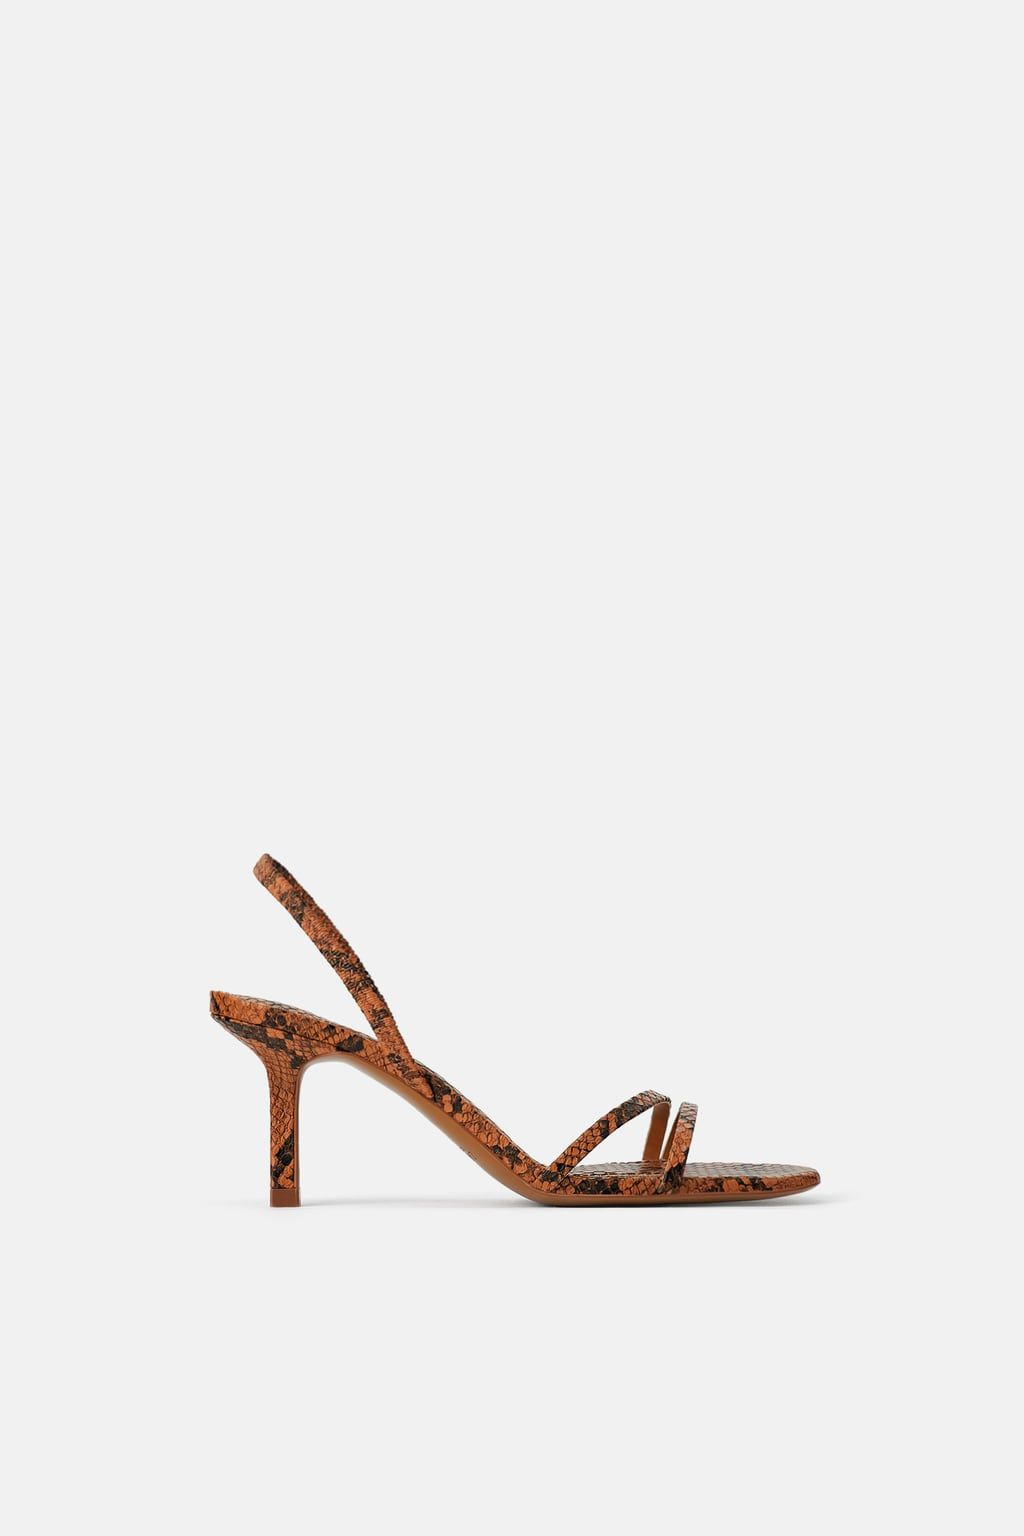 Mid Heel Sandals With Elastic Band Detail Strap Sandals Mid Heel Sandals Kitten Heel Sandals